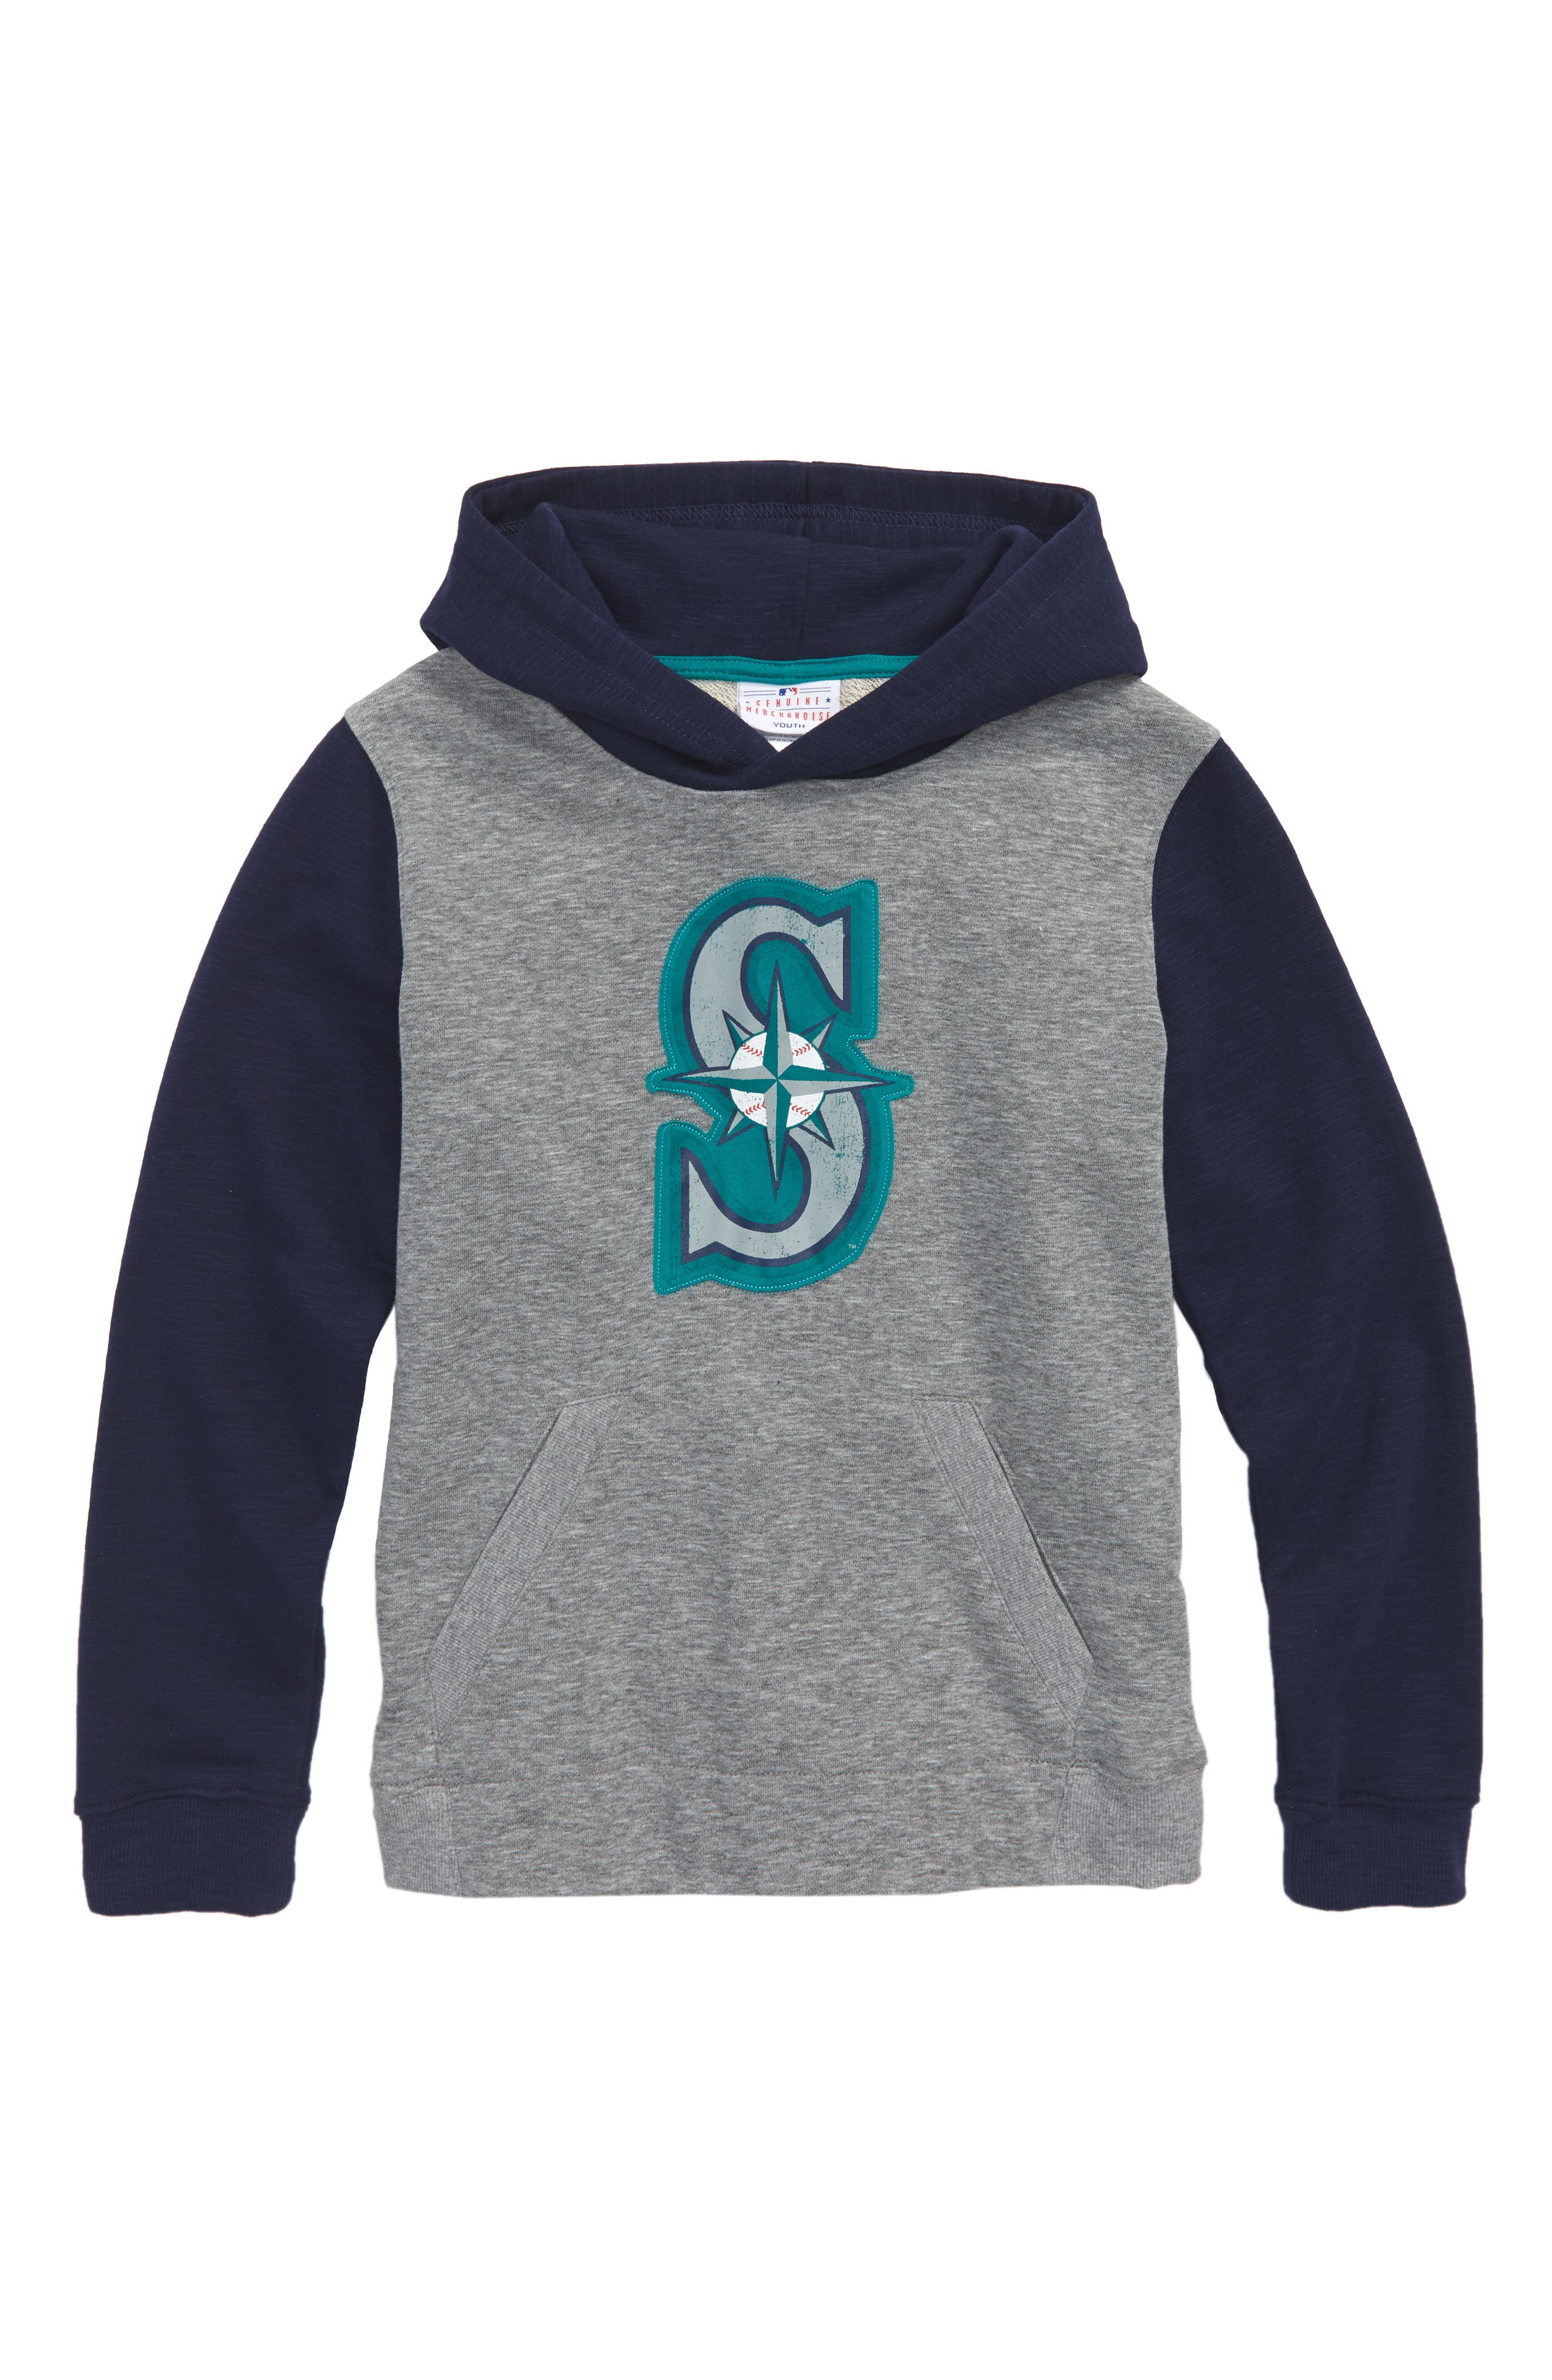 New Beginnings - Seattle Mariners Pullover Hoodie,                             Main thumbnail 1, color,